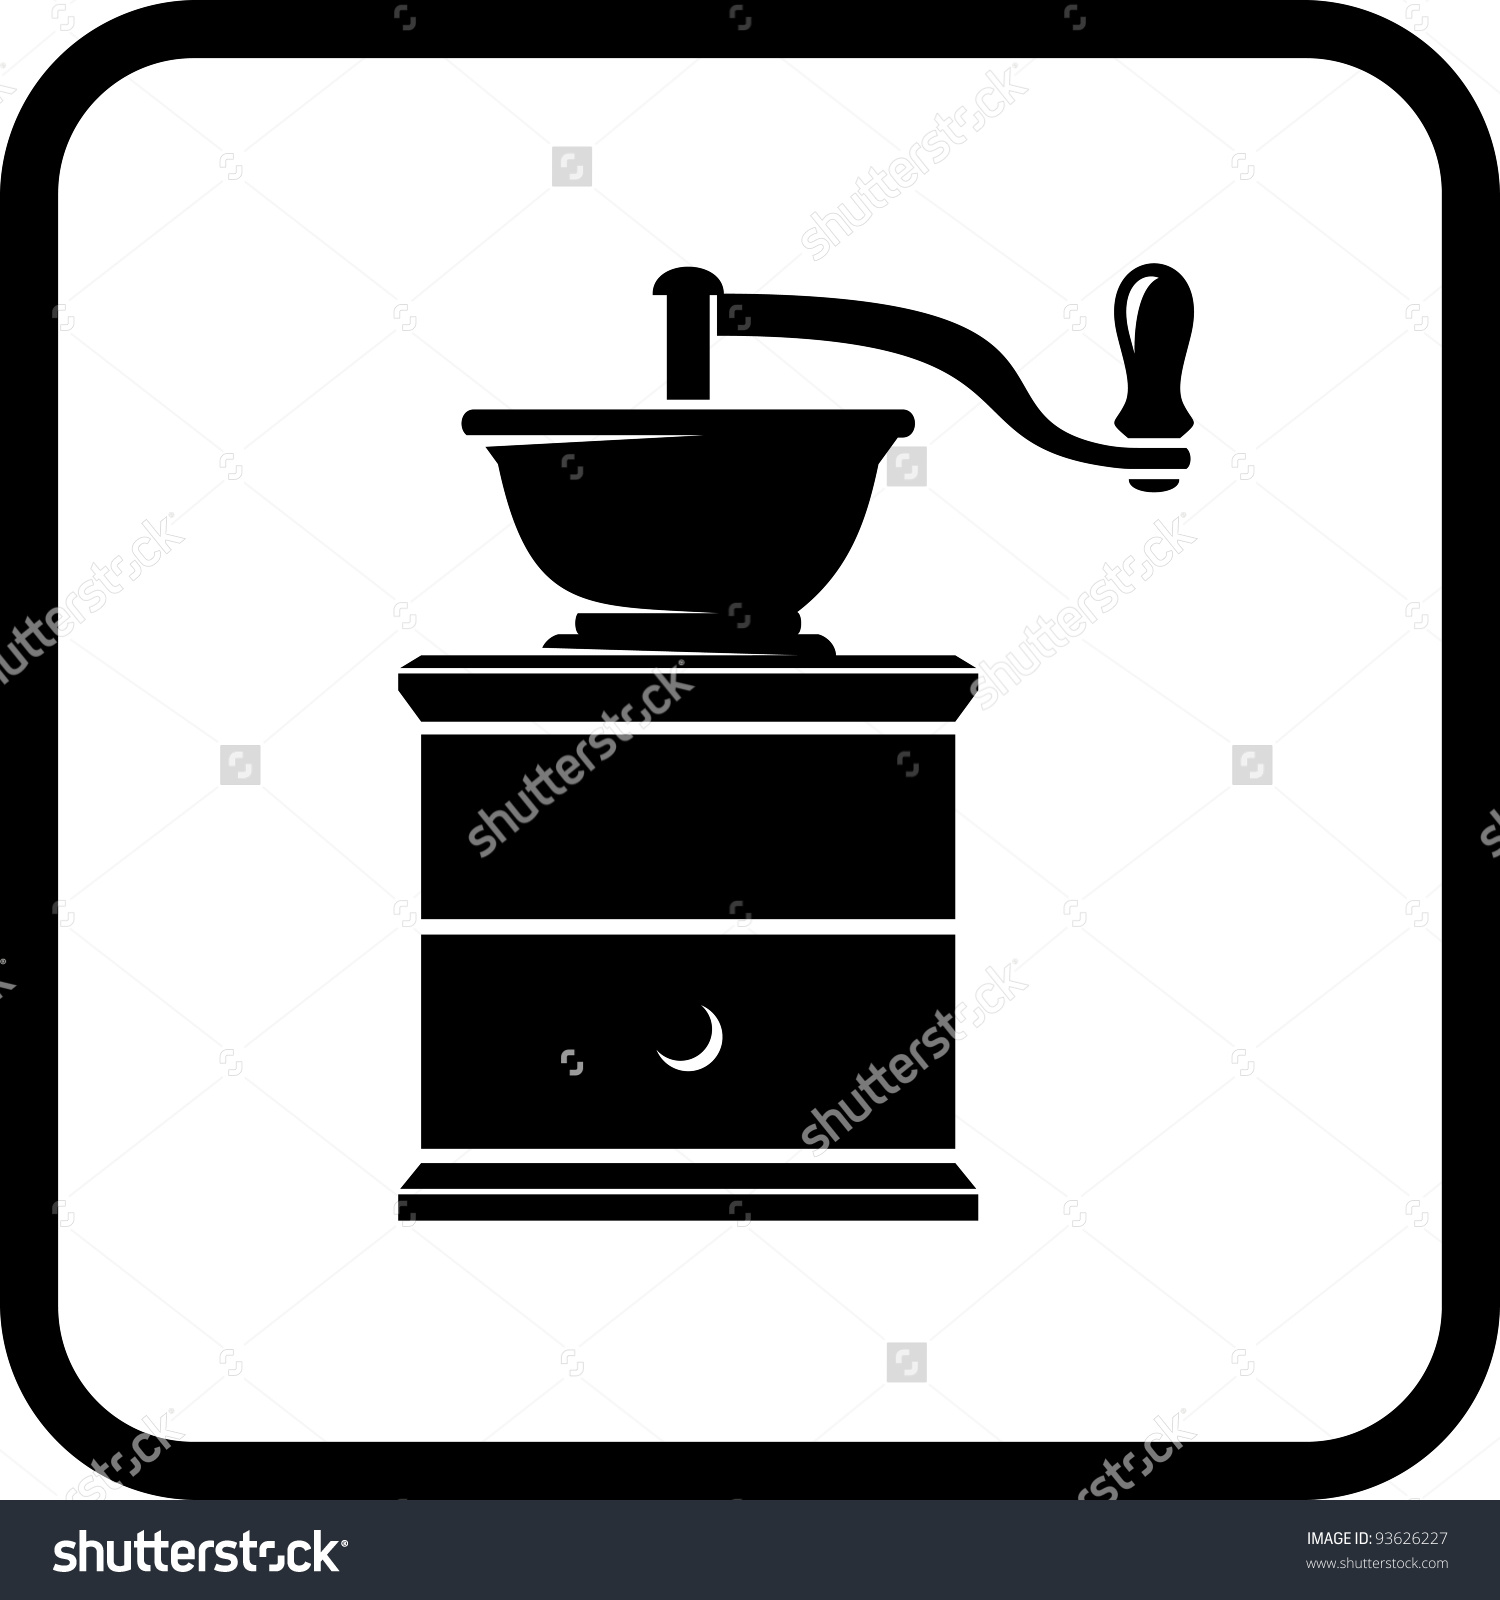 Coffee Grinder Vector Icon Isolated On Stock Vector 93626227.